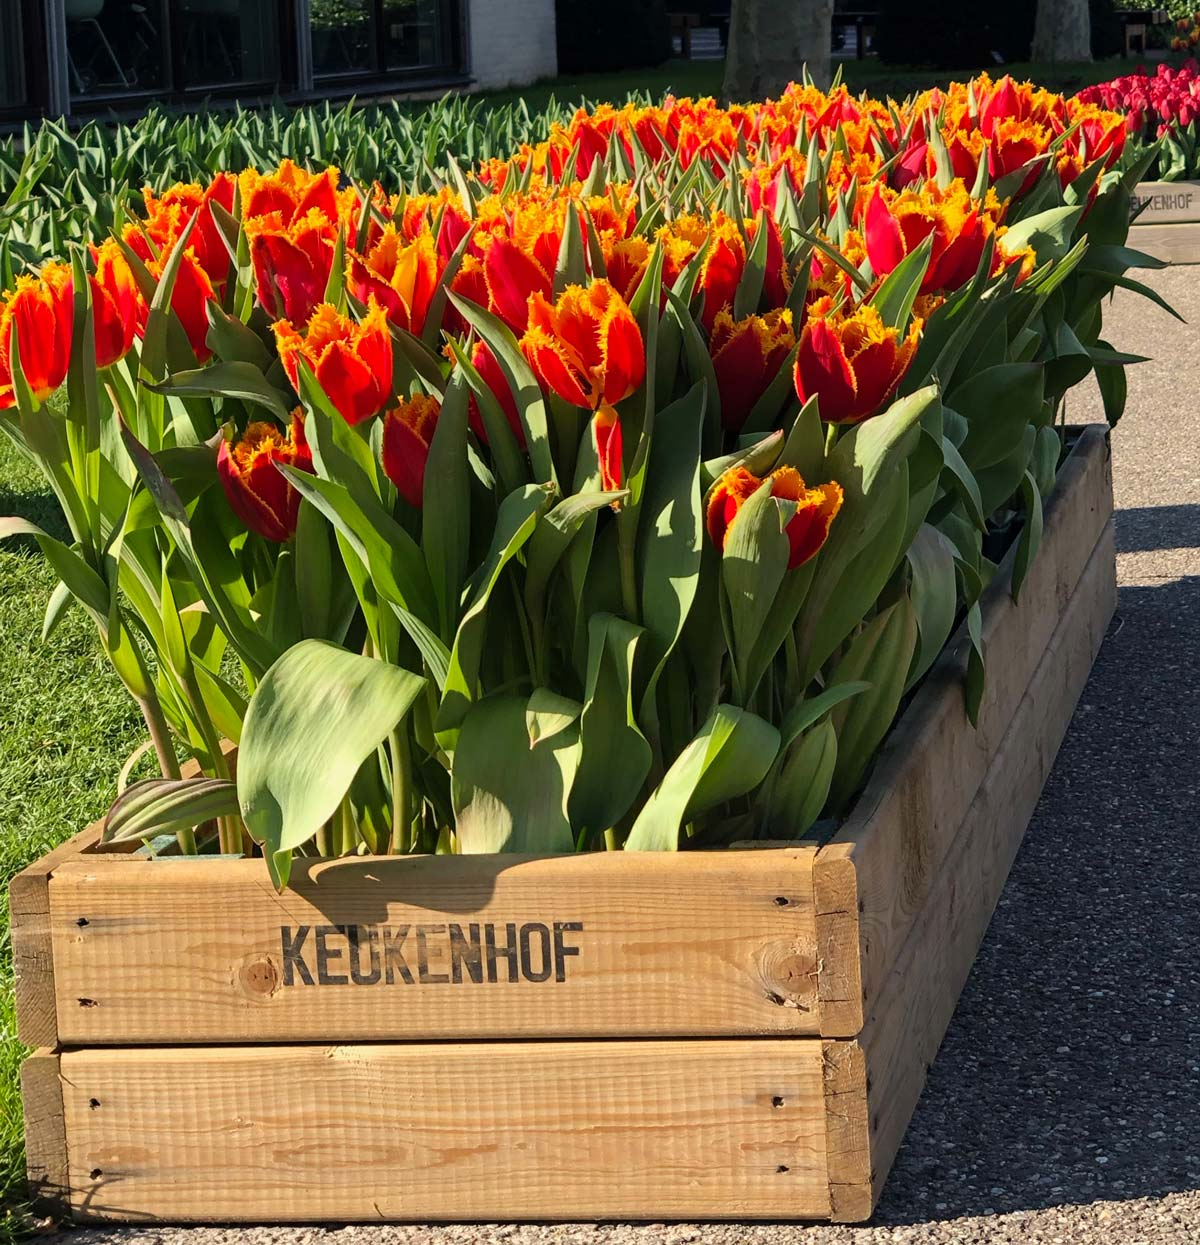 Interesting Facts about Keukenhof Tulips | Flower Gifts | Hamper World